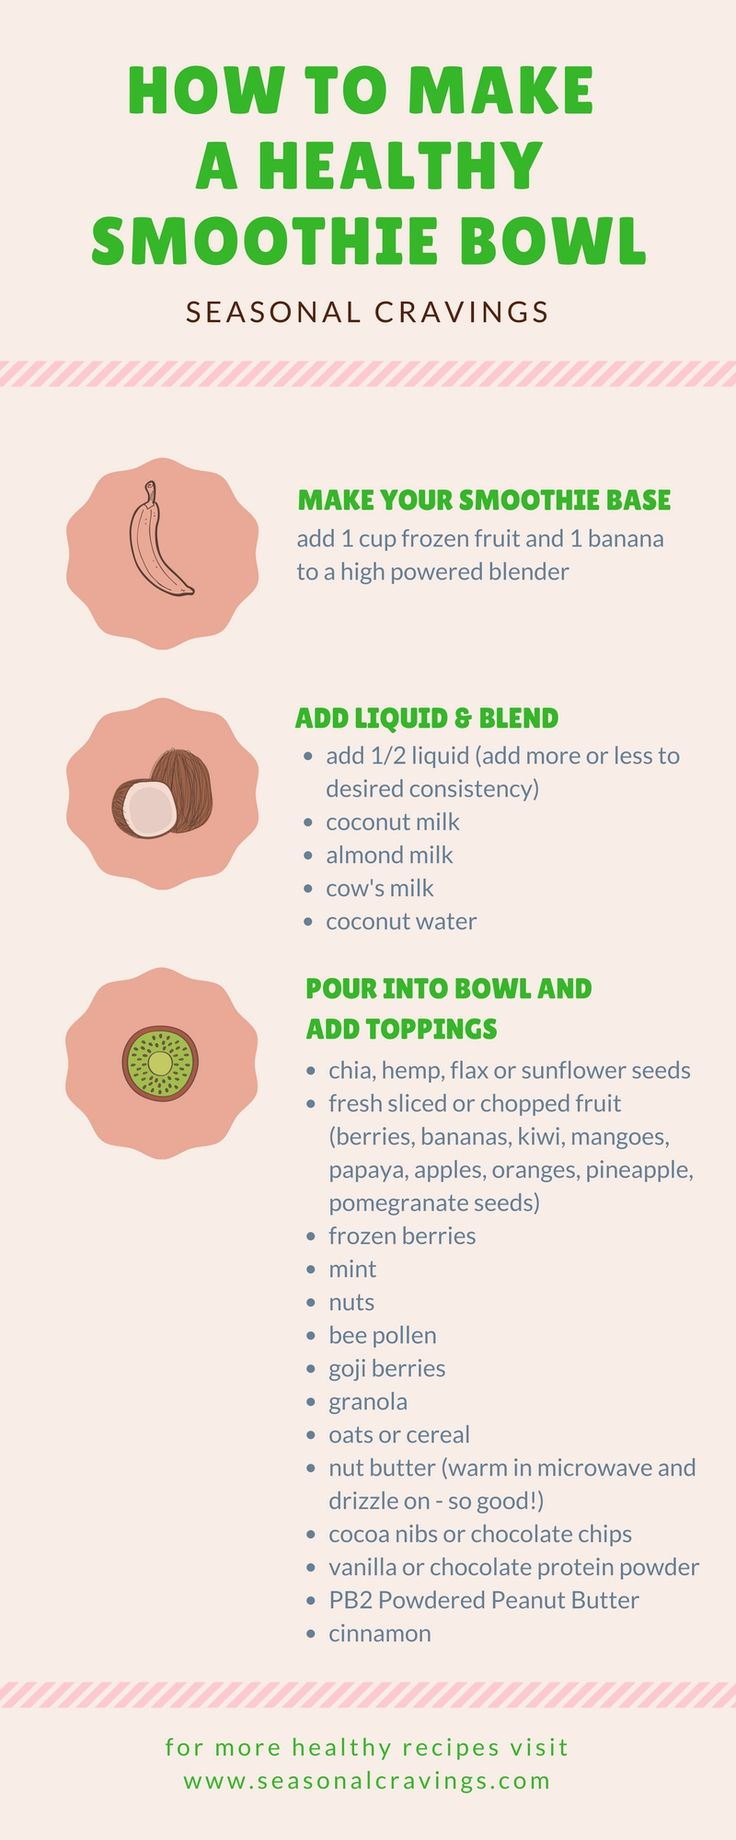 How To Make A Healthy Smoothie Bowlgraphic